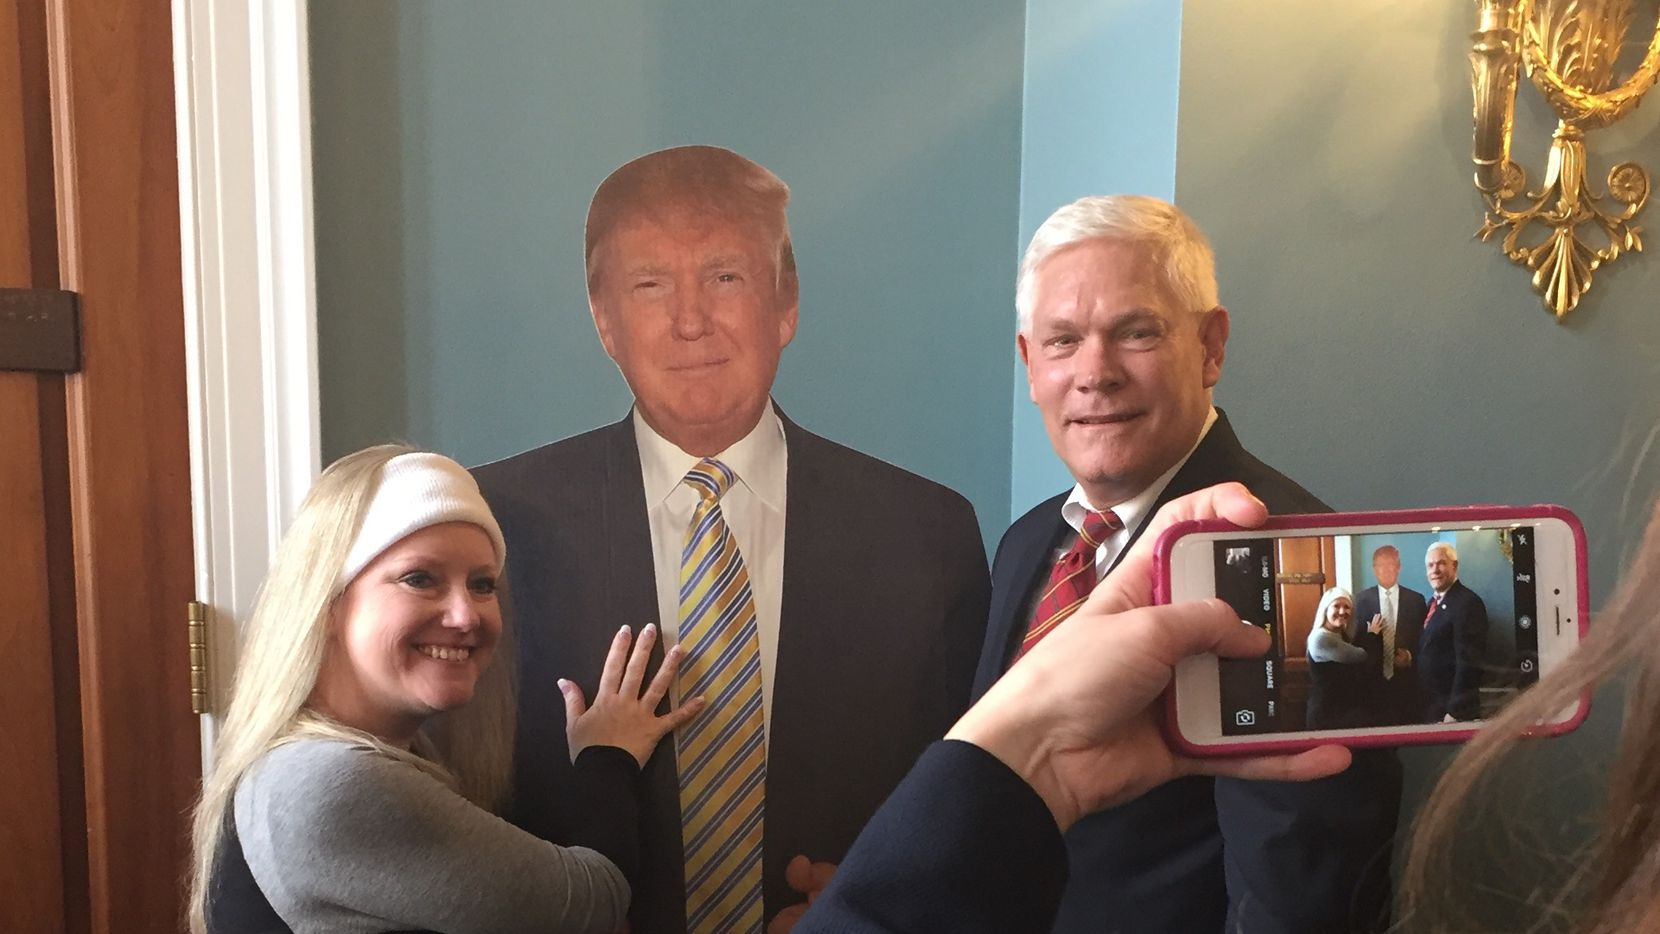 Allison Chaffin, of Lake Fork, stands for a photo with Dallas Rep. Pete Sessions on Thursday, Jan. 19, 2017, the day before President-elect Donald Trump takes the oath of office. (Katie Leslie/Staff)